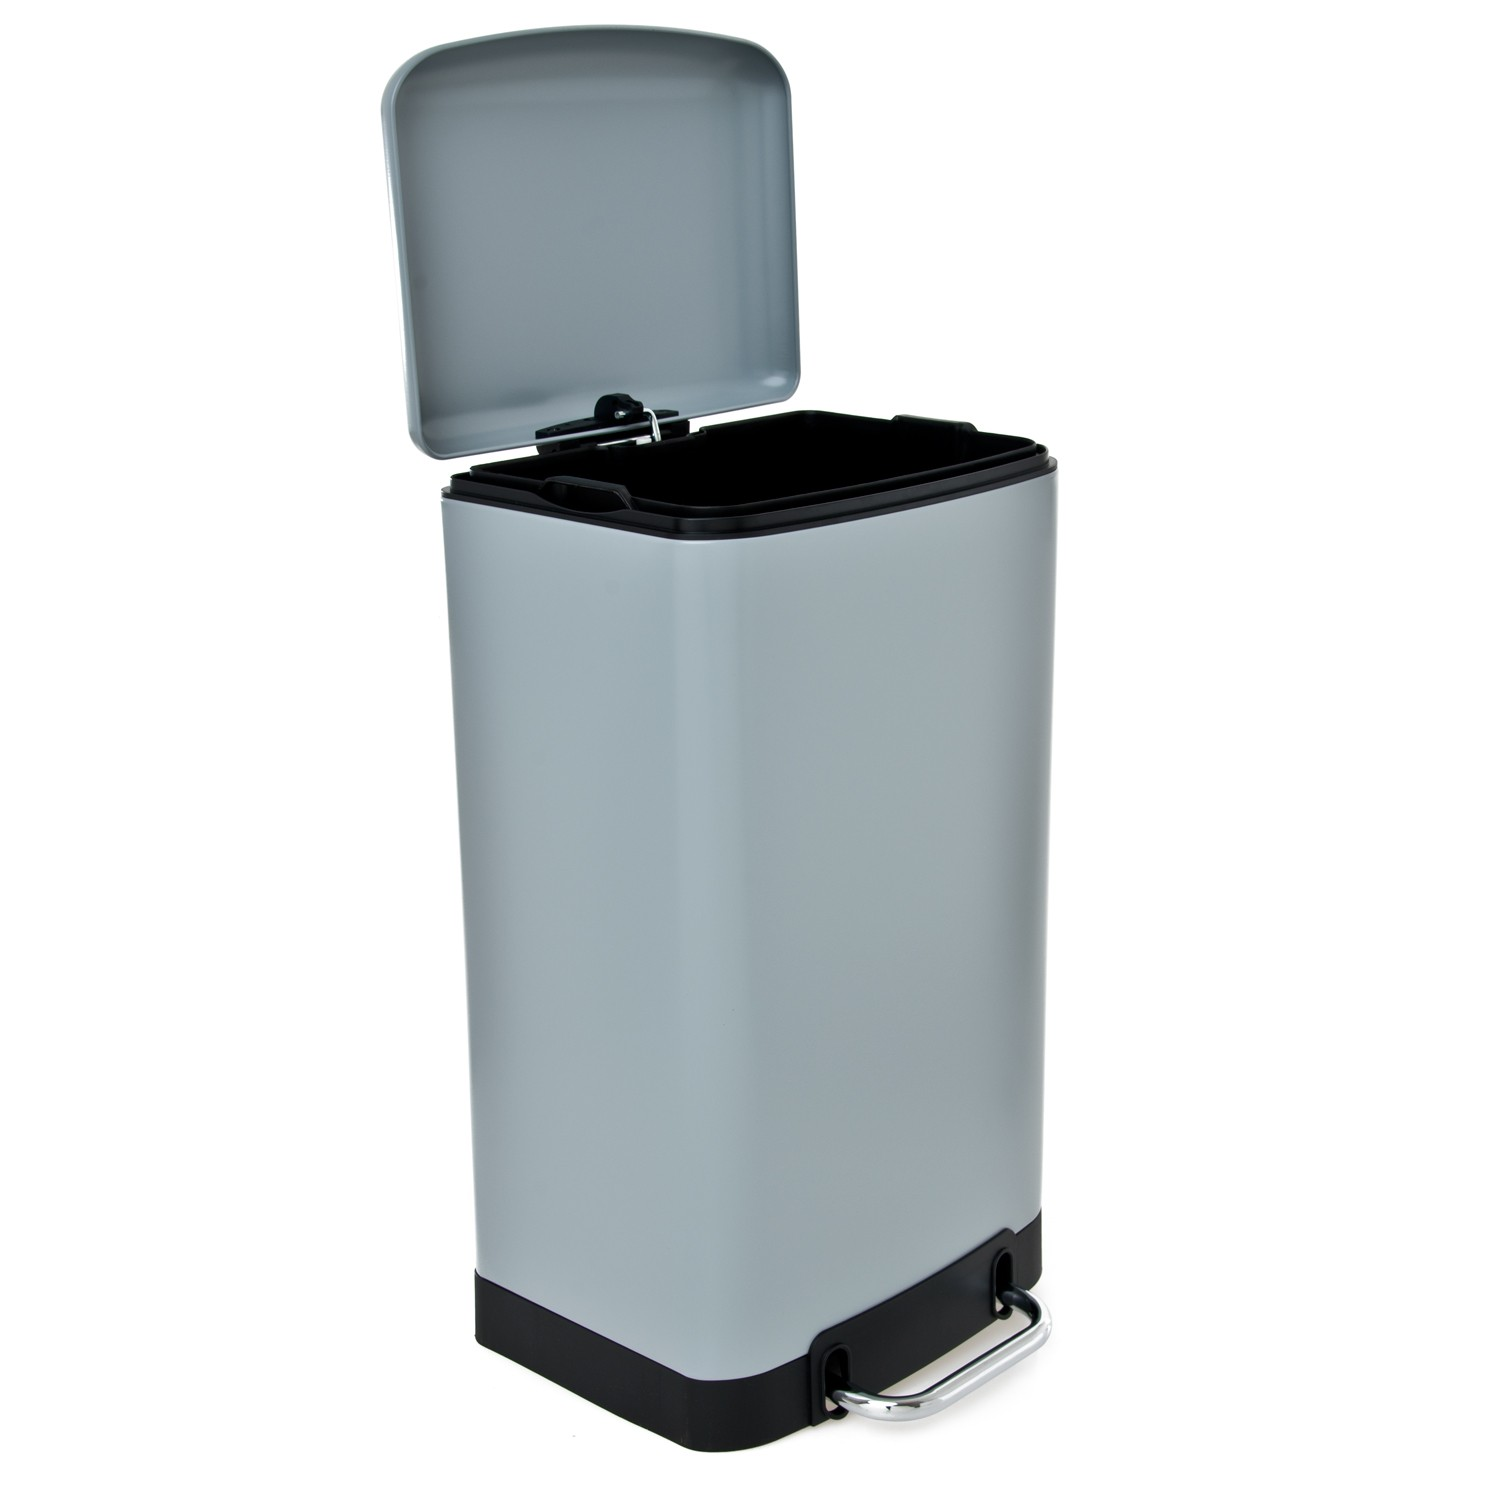 Casa 30l Rectangular Soft Close Bin, Grey | Leekes